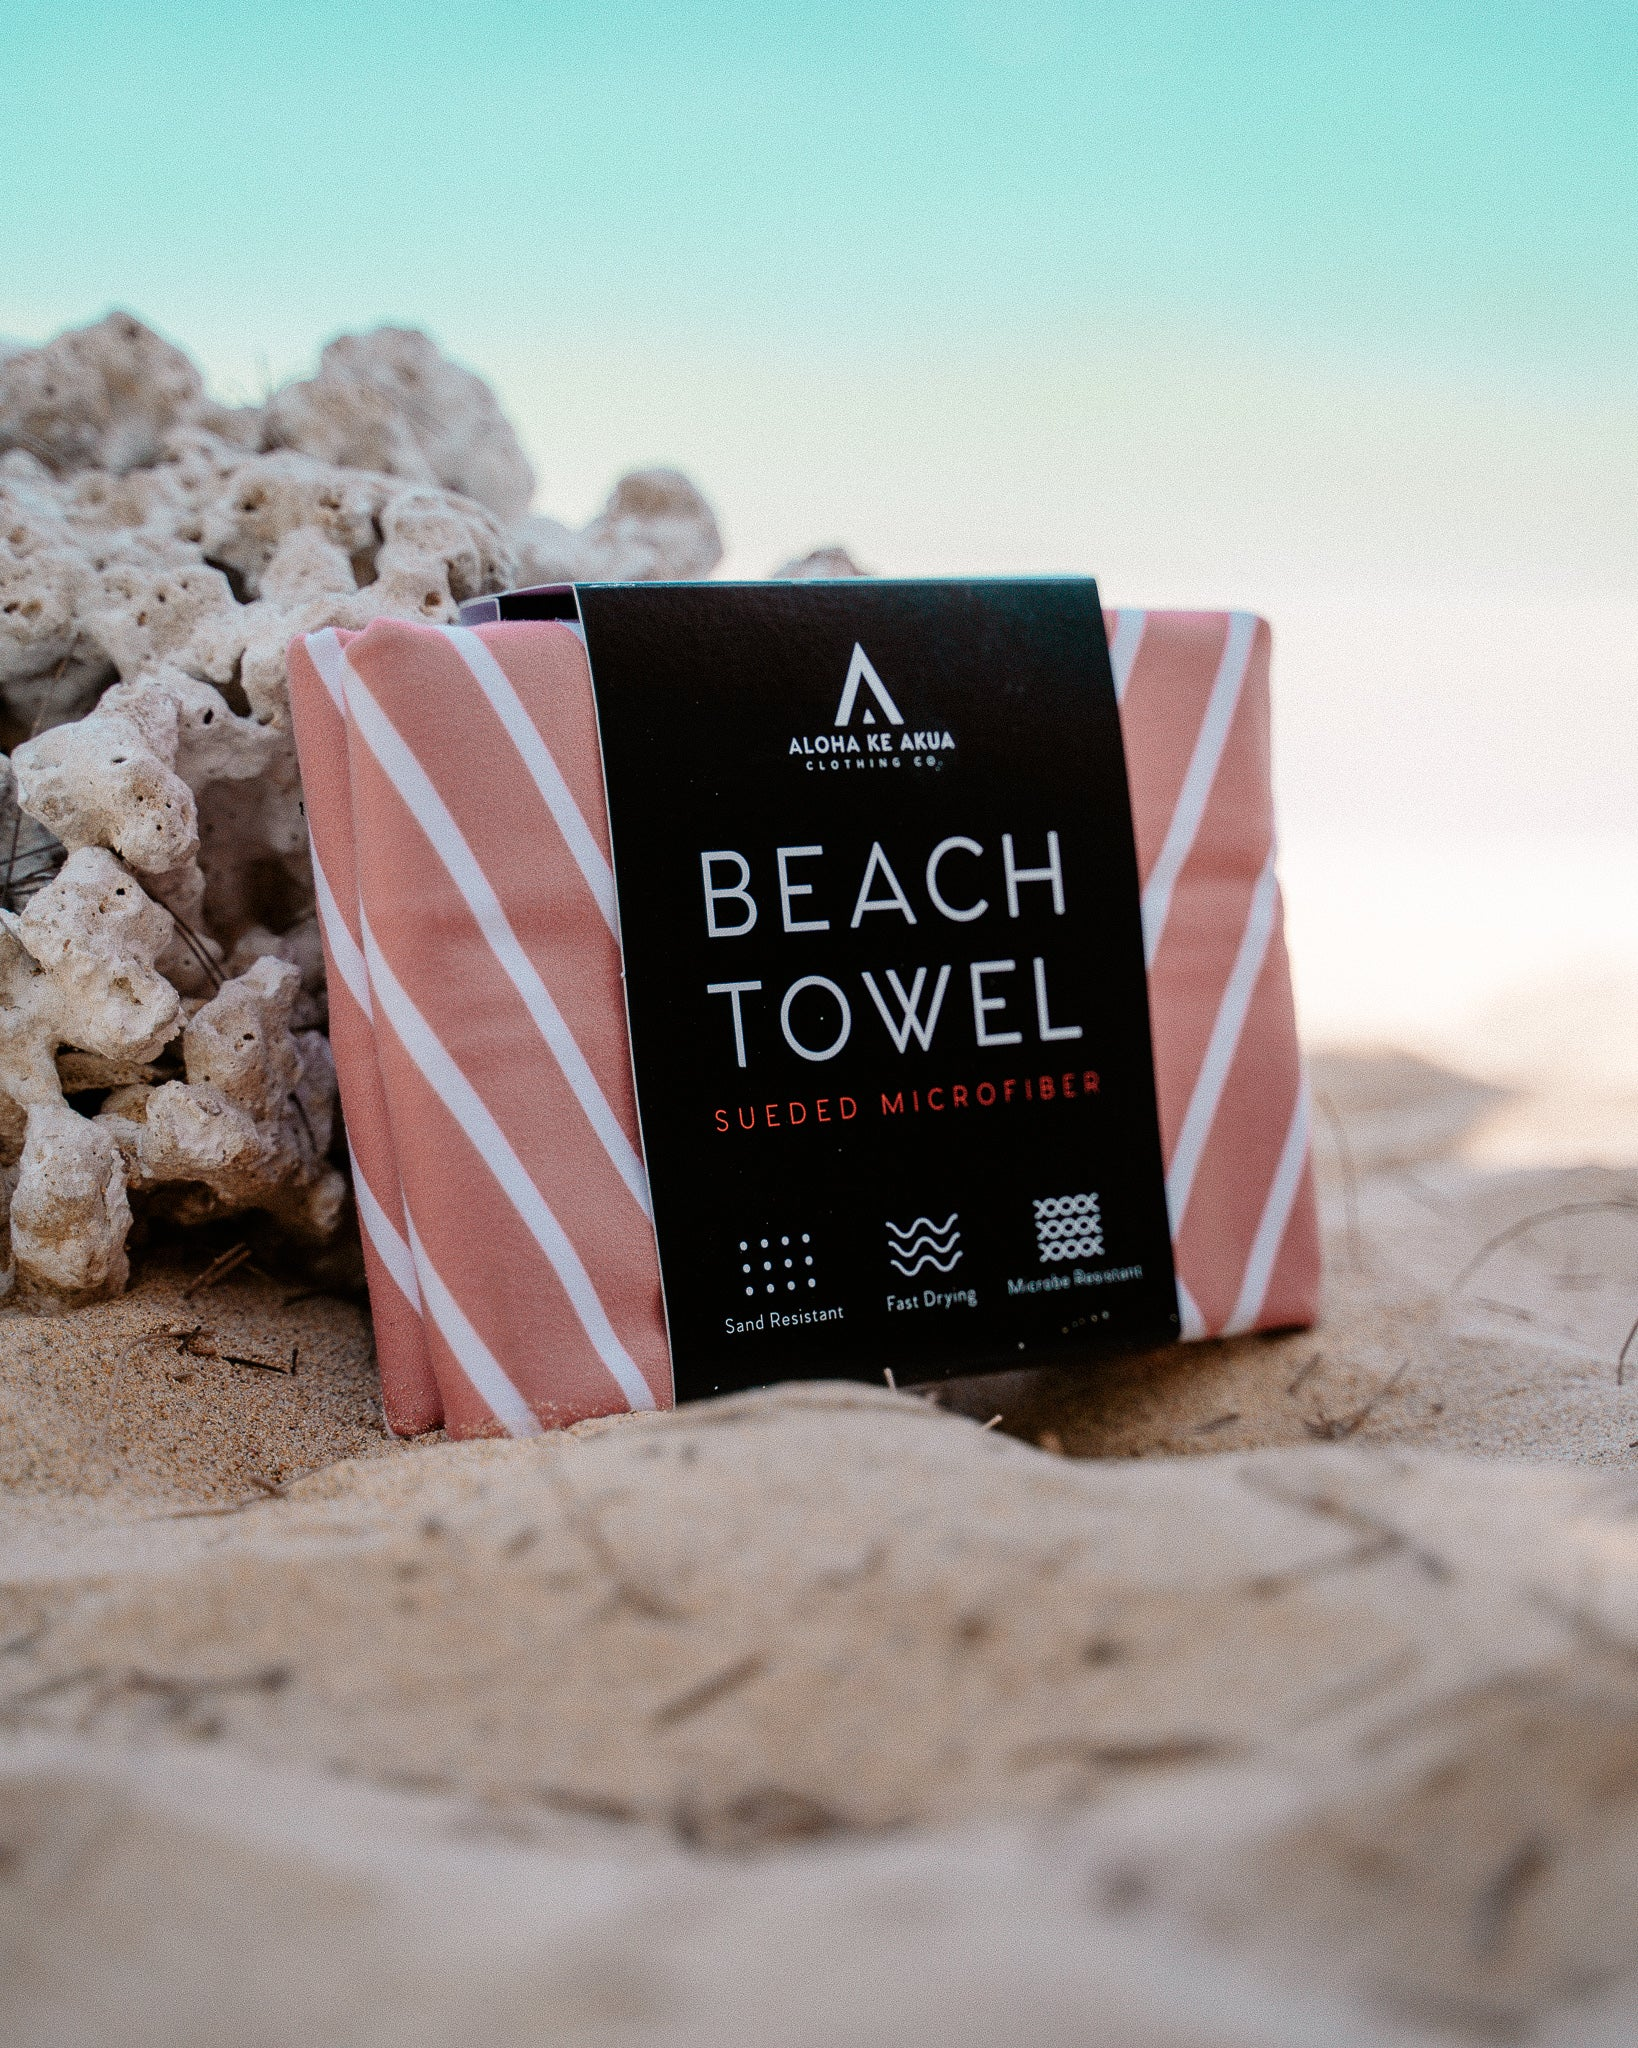 Beach Towel Kaimana In Packaging